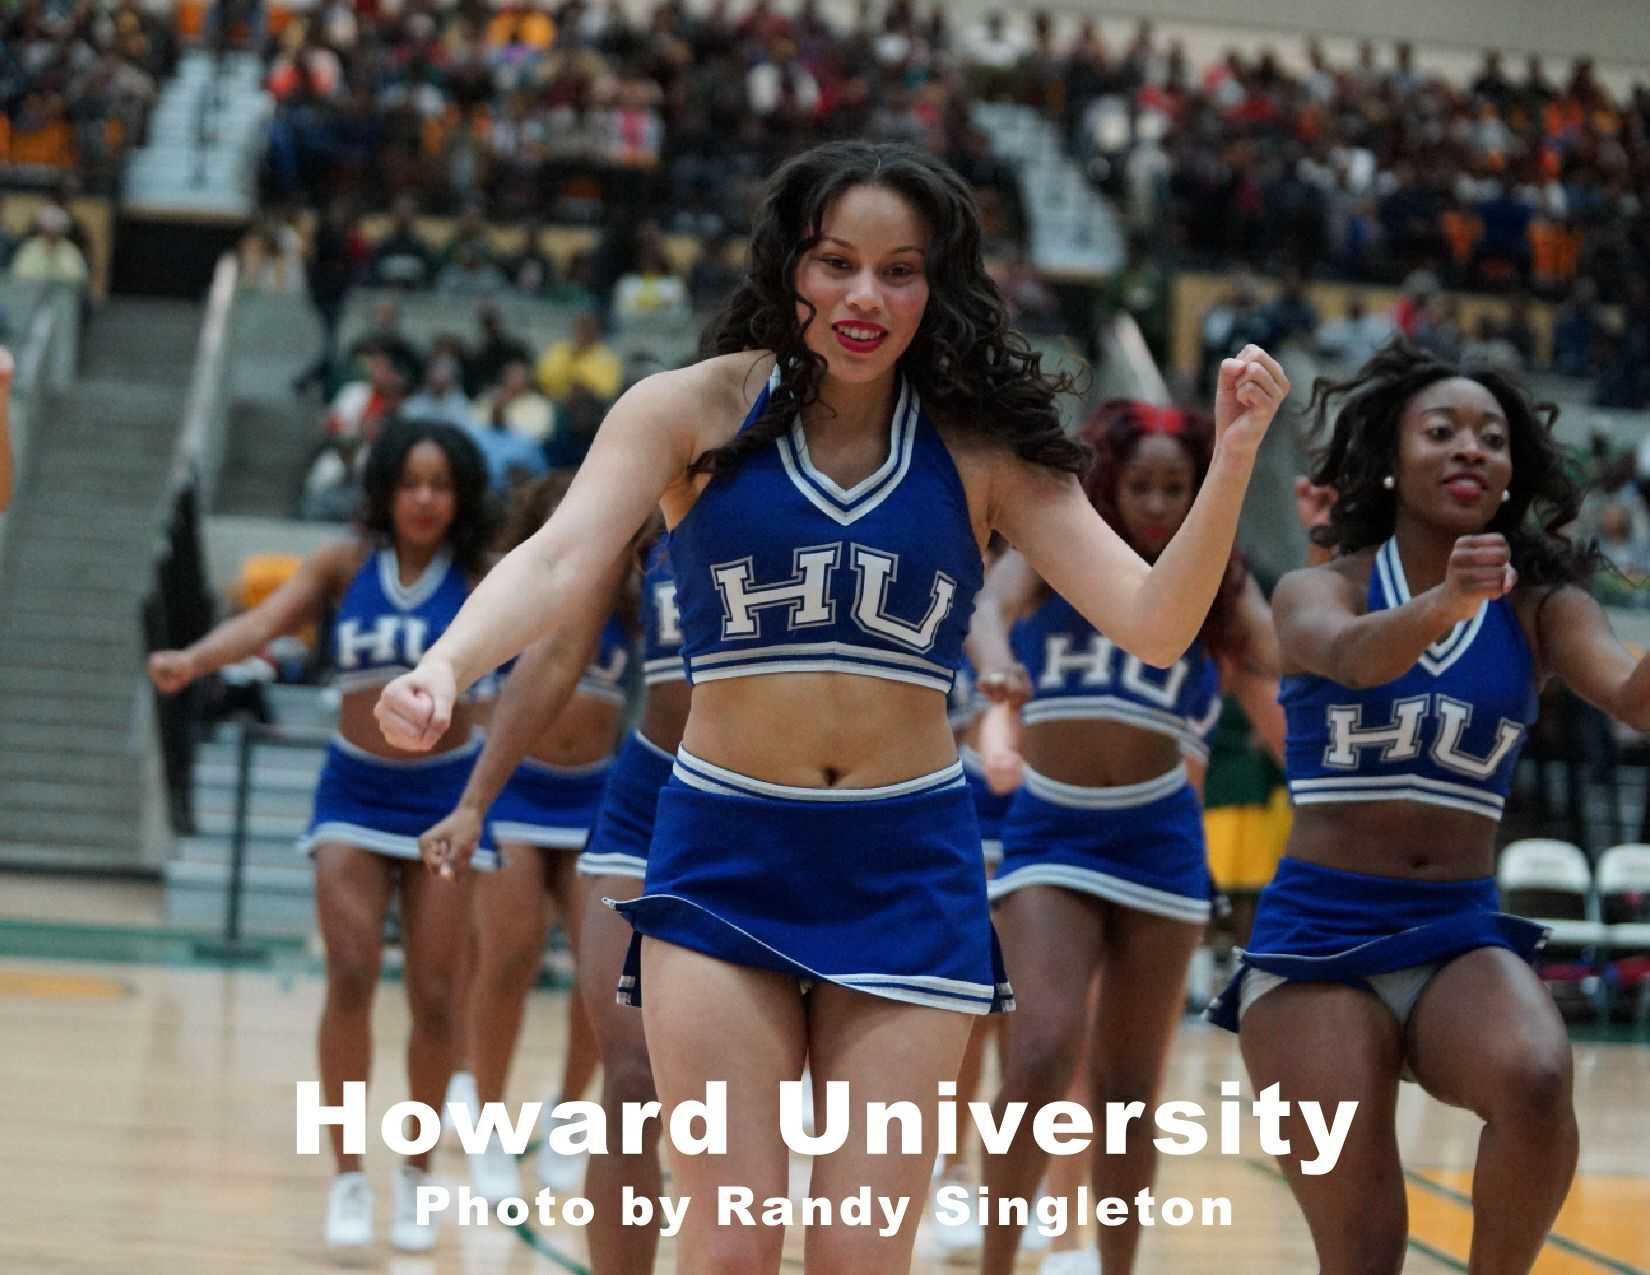 howard university cheerleaders dream big photos howard university